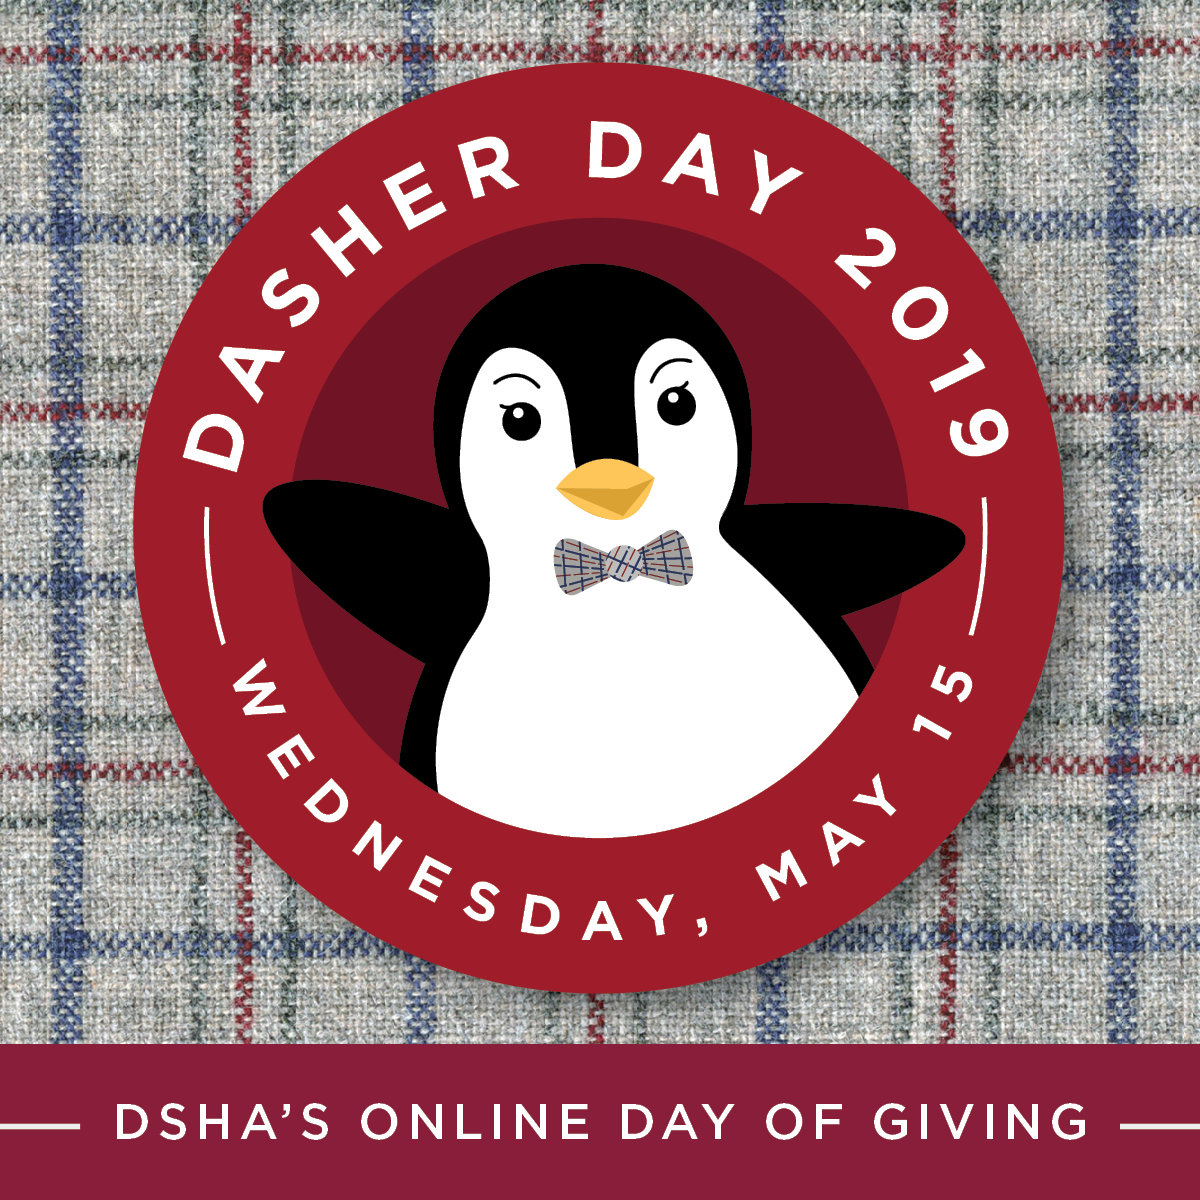 Dasher Day | May 15, 2019